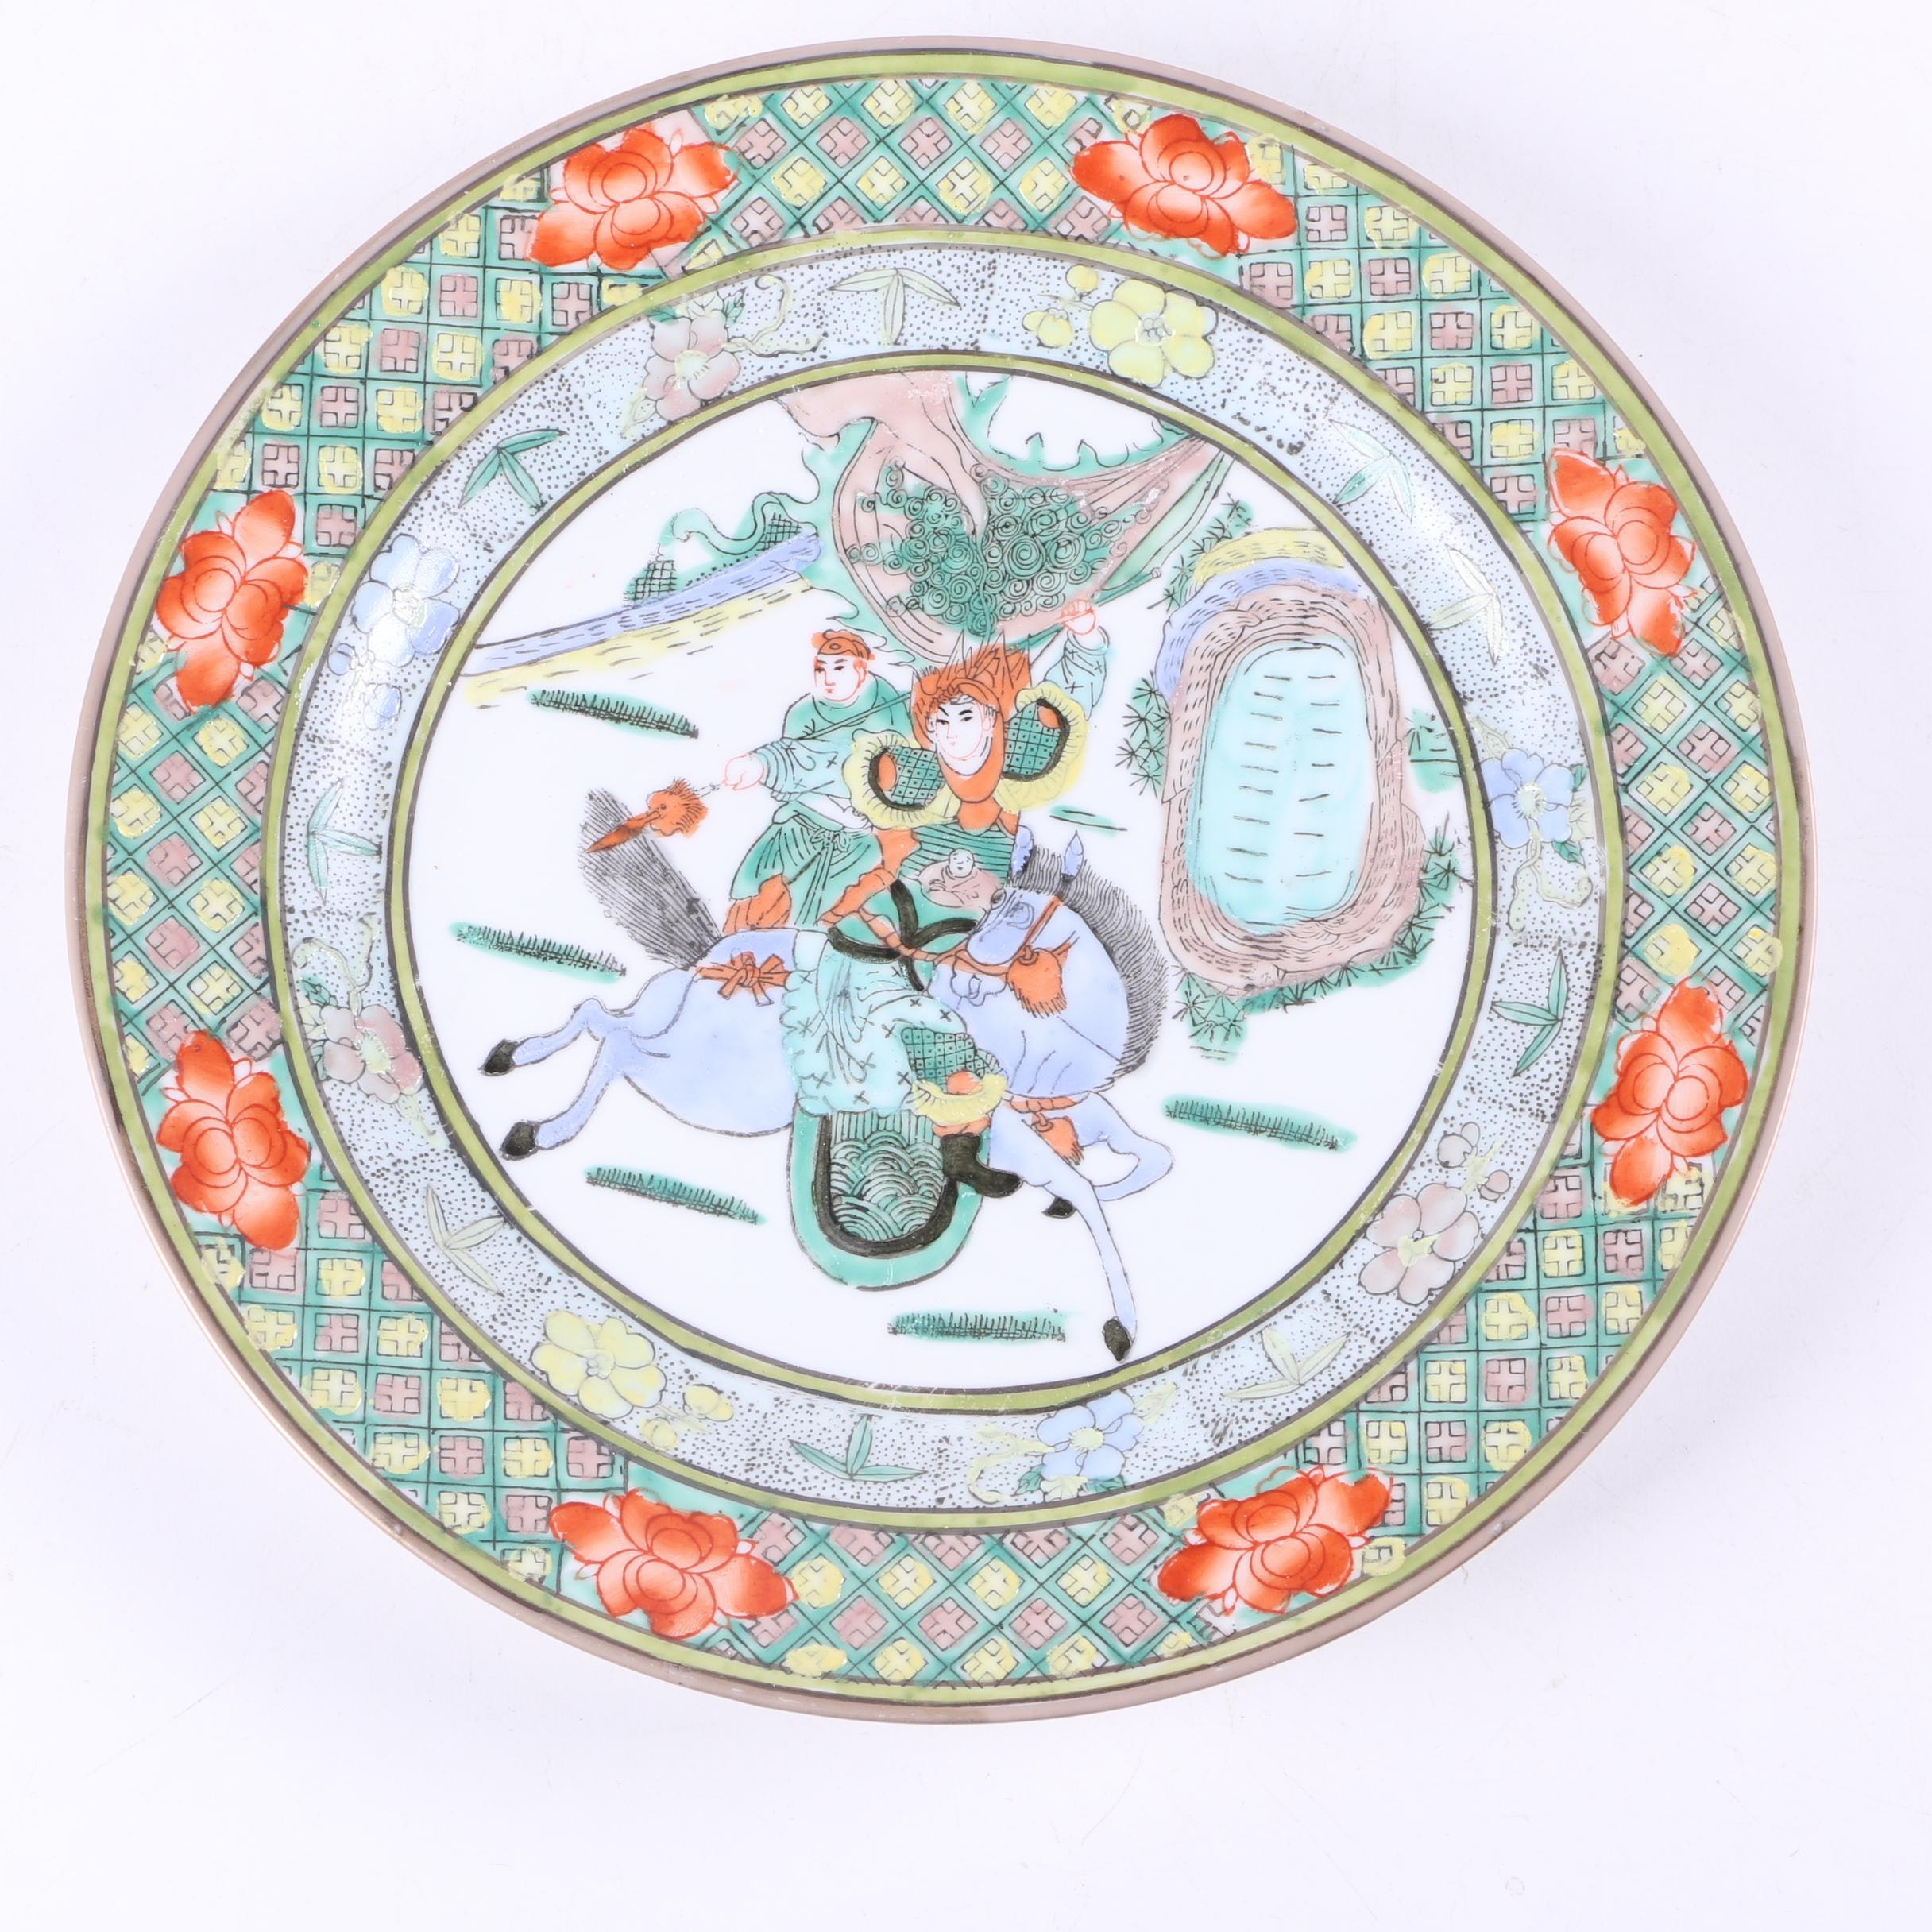 East Asian Hand Painted Decorative Plate